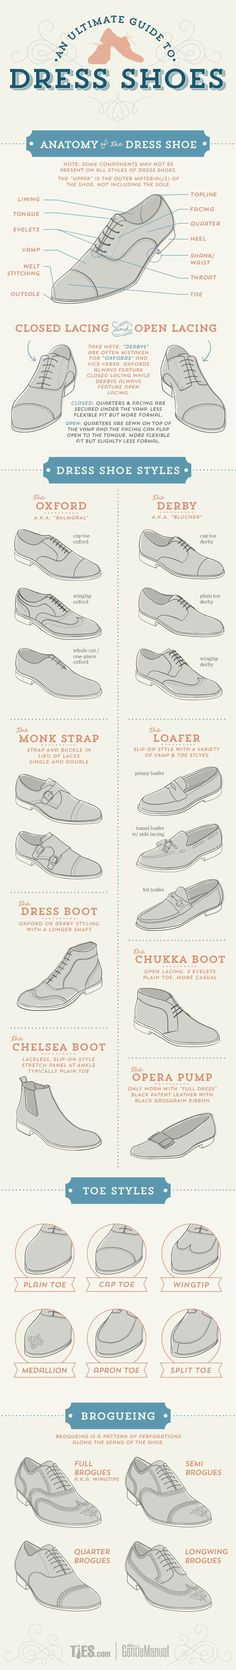 Shoe Dictionary. Closed and open lacing. Oxford, Derby, monk strap, loafer, dress boot, chukka boot, Chelsea boot, opera bump, plain toe, apron toe, split toe, full brogues, semi-brogues, quarter brogue, longwing brogue.